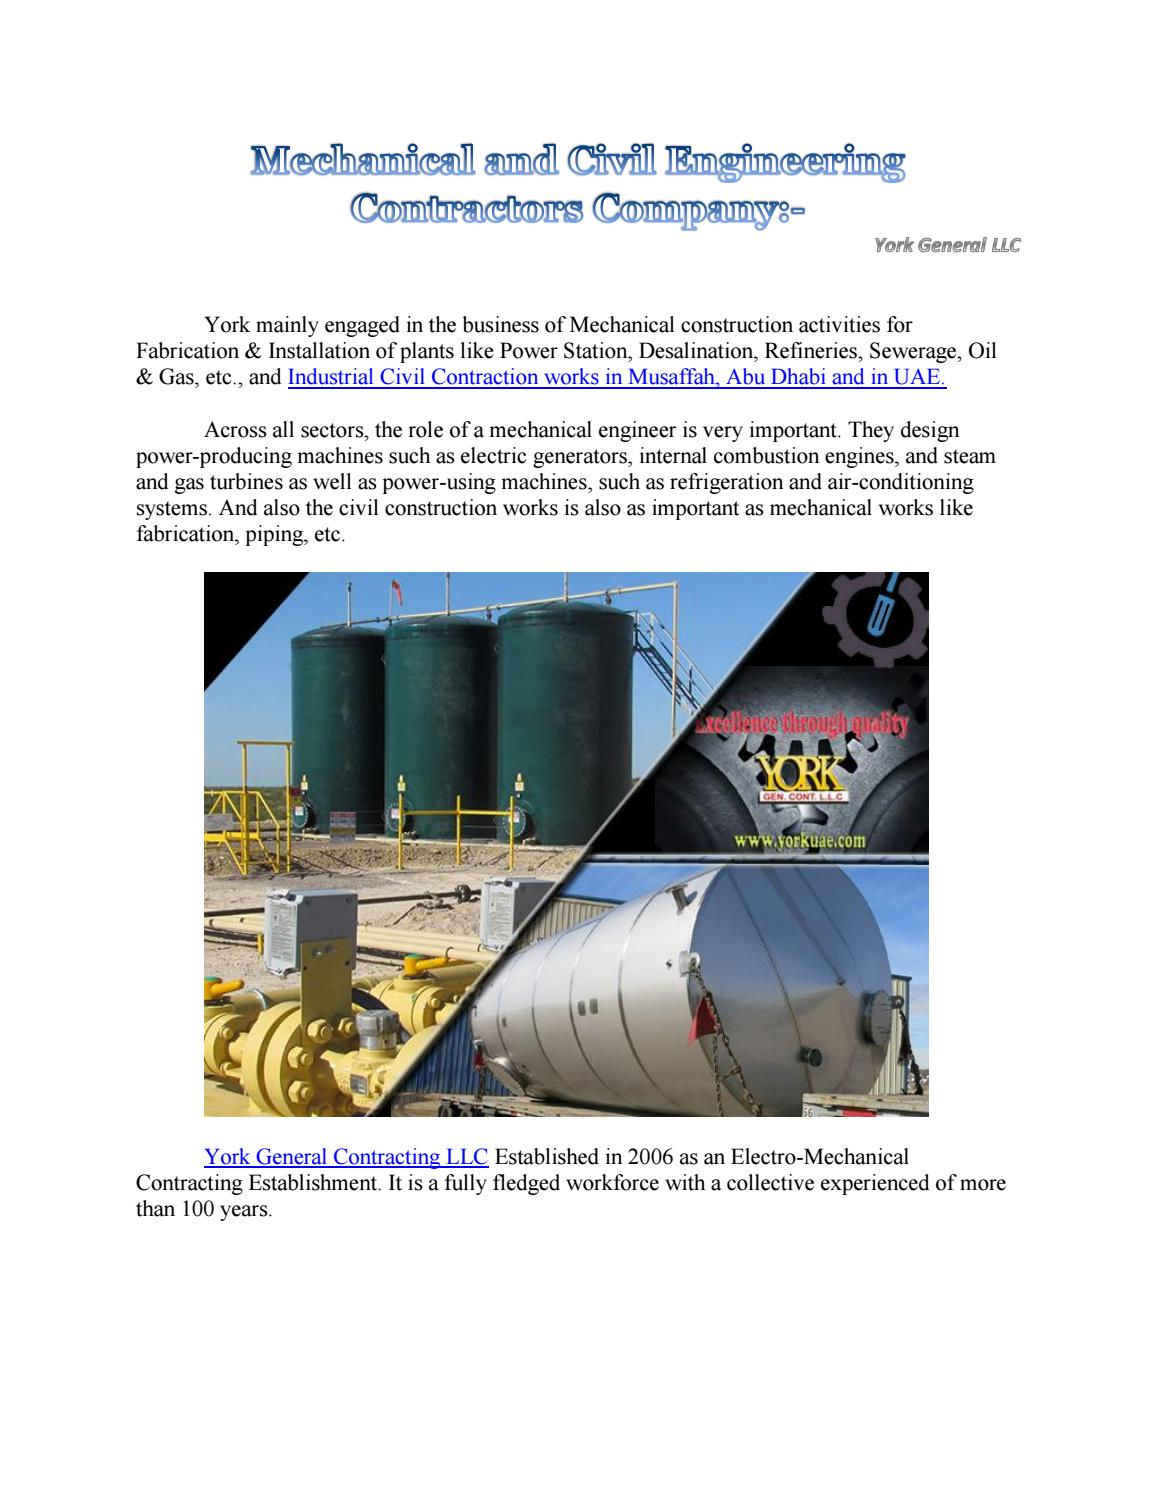 Mechanical and Civil Engineering Contractors Company by York